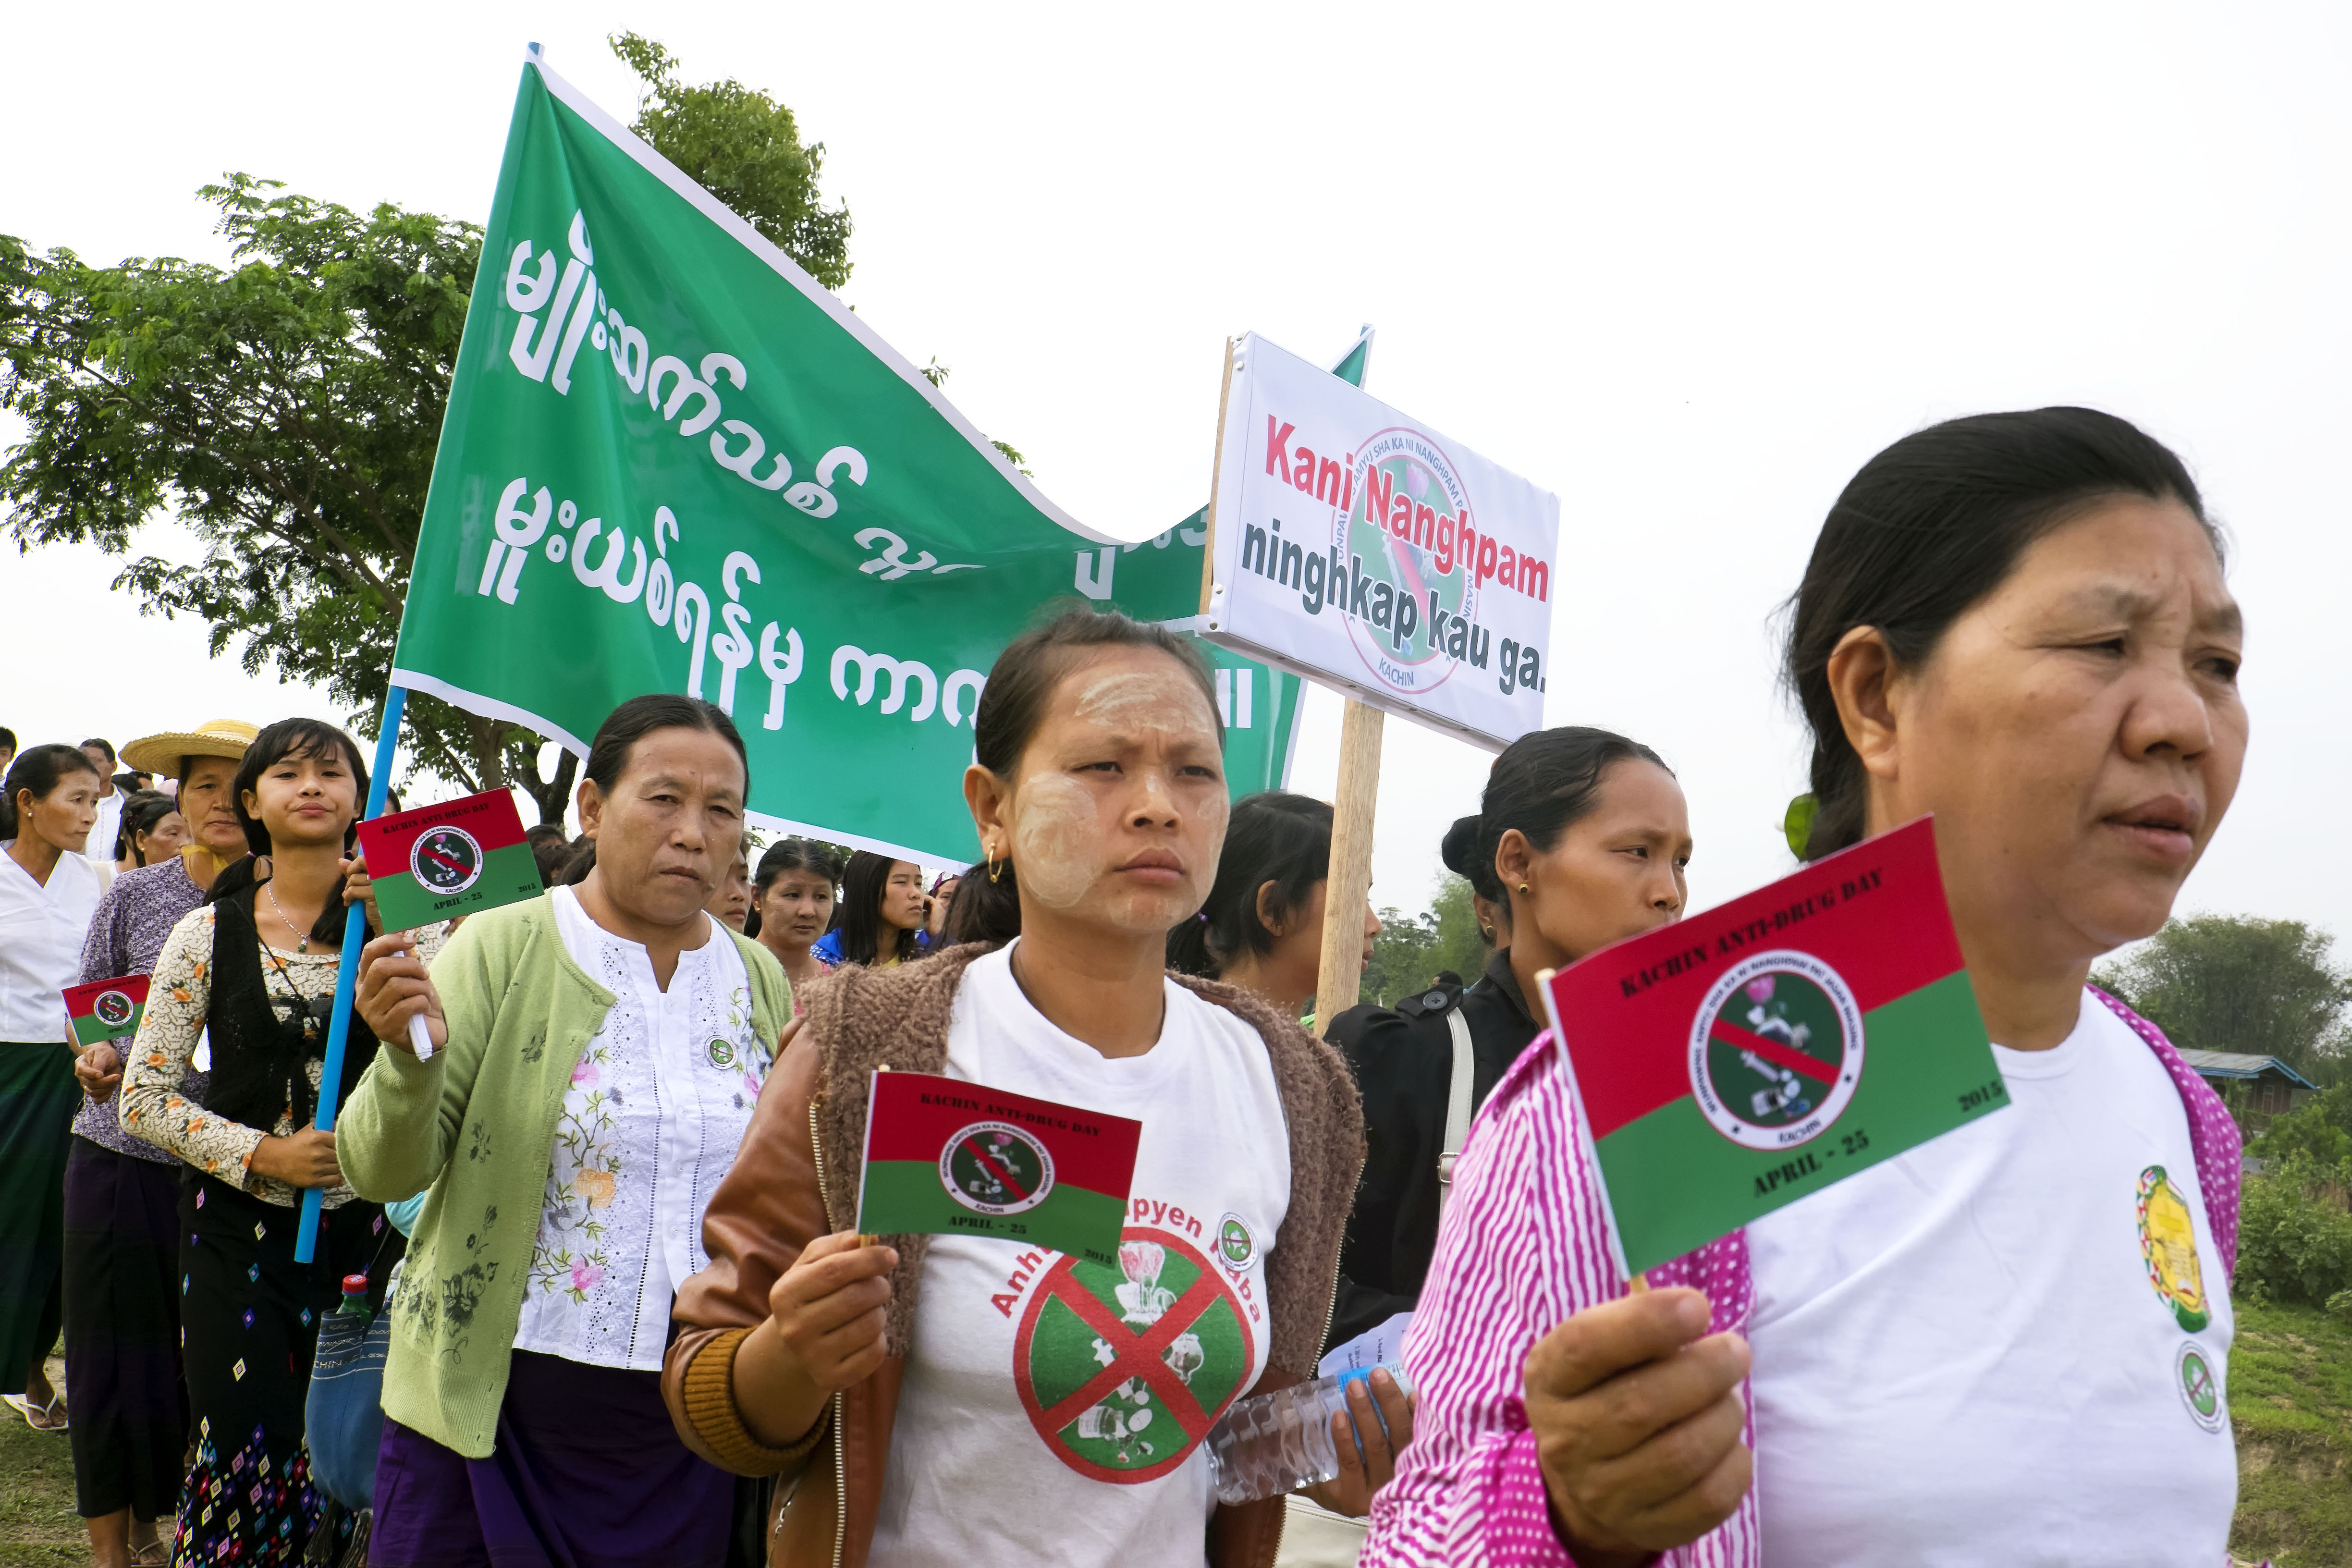 More than a thousand people took part in a recent Anti-Drug Day in Myitkyina organized by a statewide anti-drug coalition. (Photo: Brennan O'Connor / The Irrawaddy)